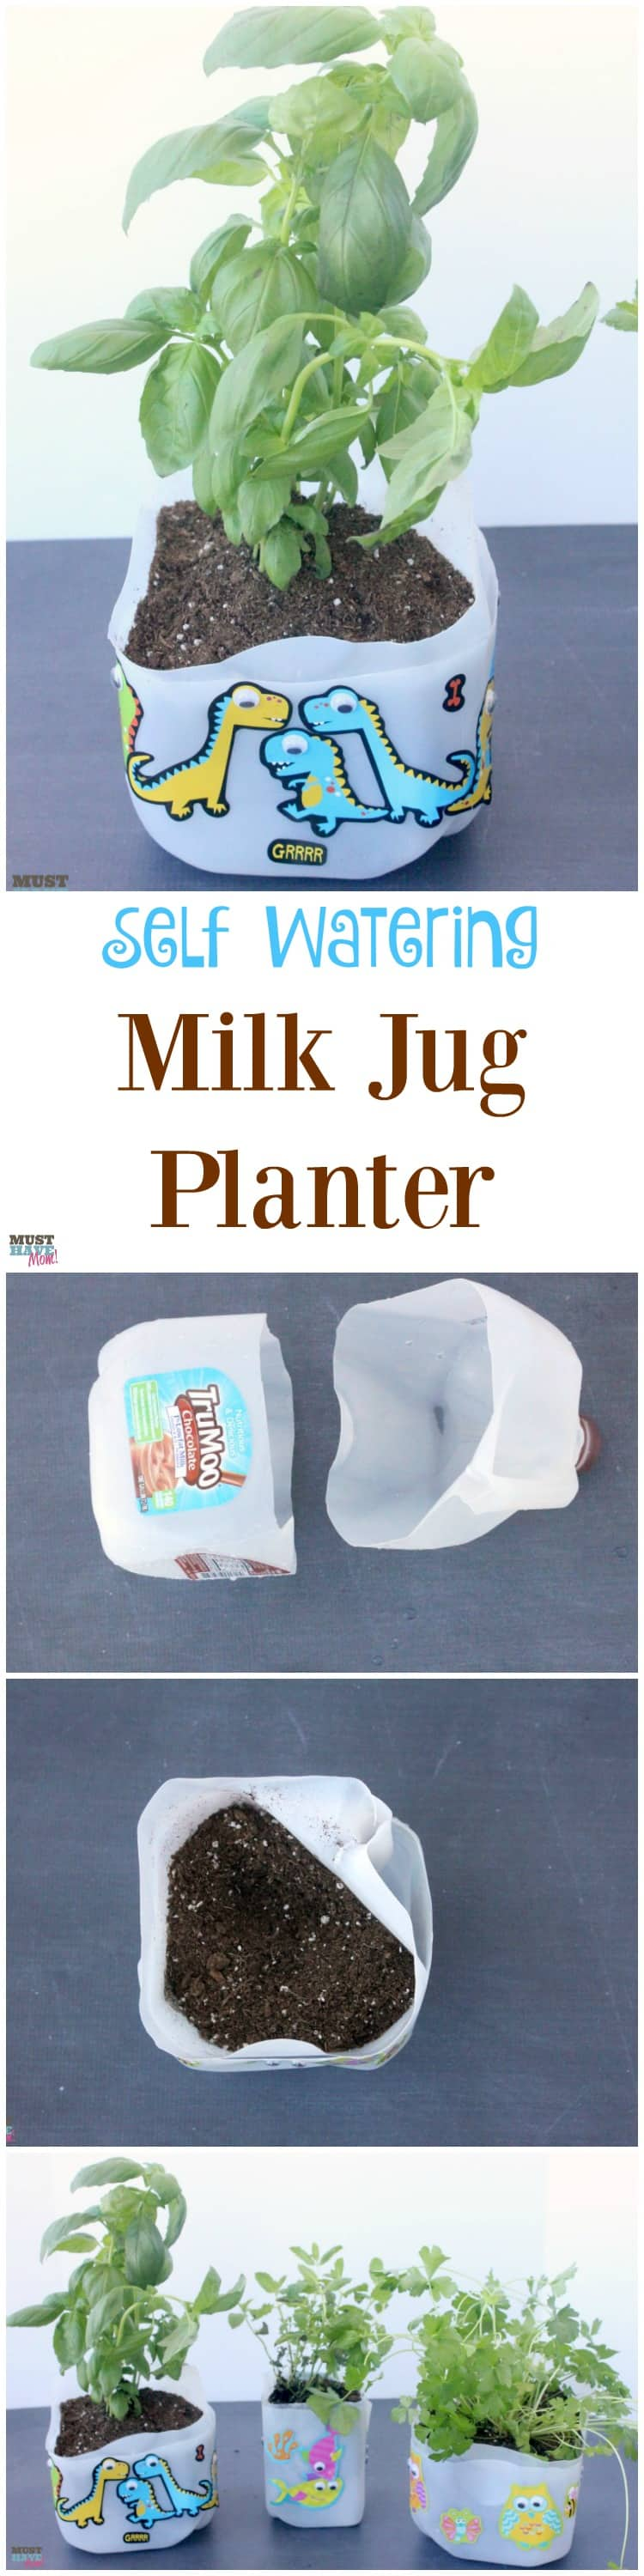 DIY Self Watering Milk Jug Planter Idea! Make your own self watering planter out of a milk jug. Upcycle and reuse your milk jug and get the kids involved! Milk jug gardening ideas!